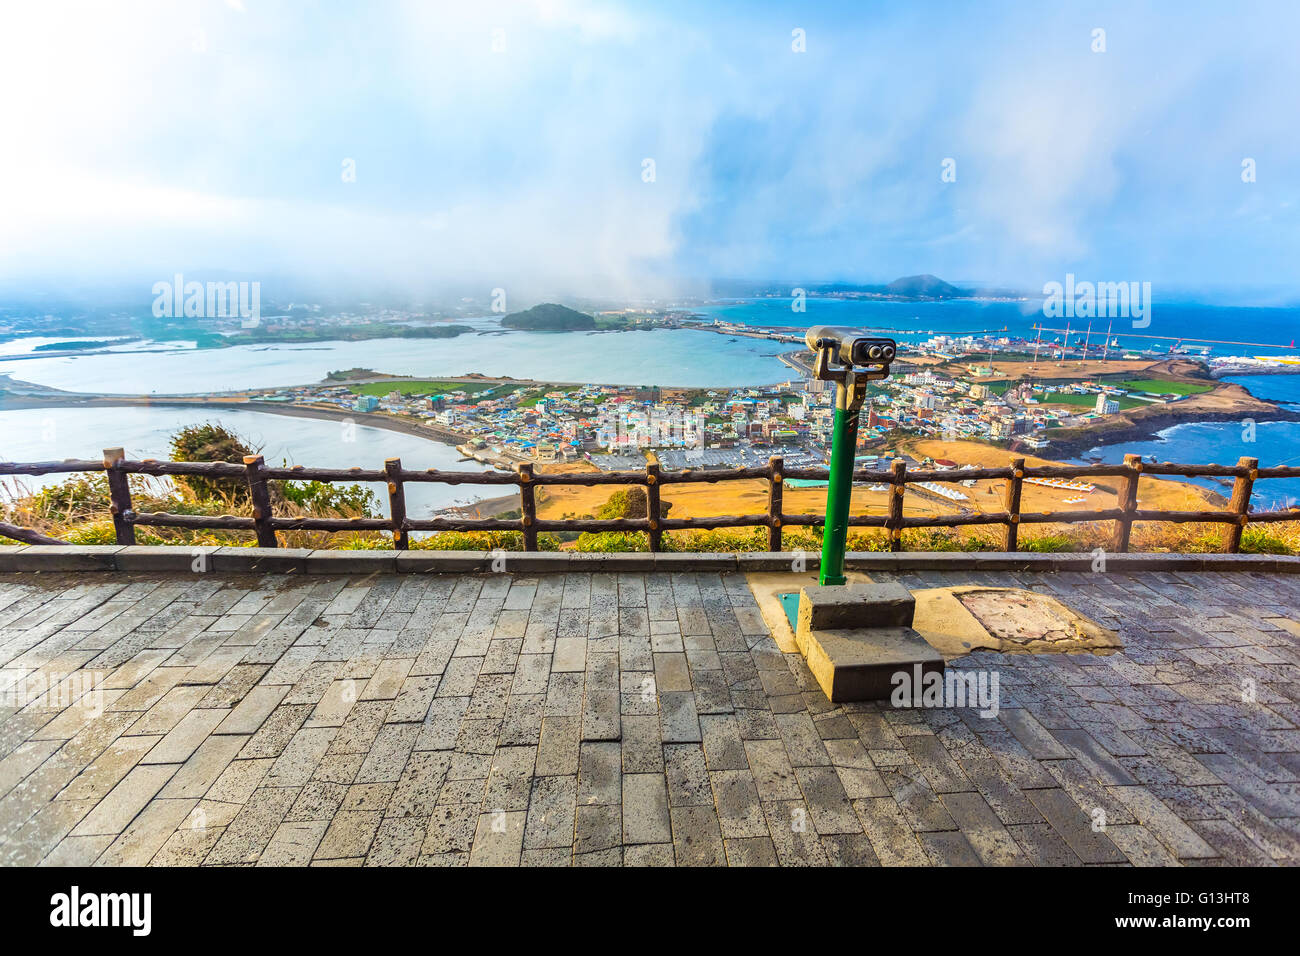 View from Seongsan Ilchulbong moutain in Jeju Island, South Korea. - Stock Image